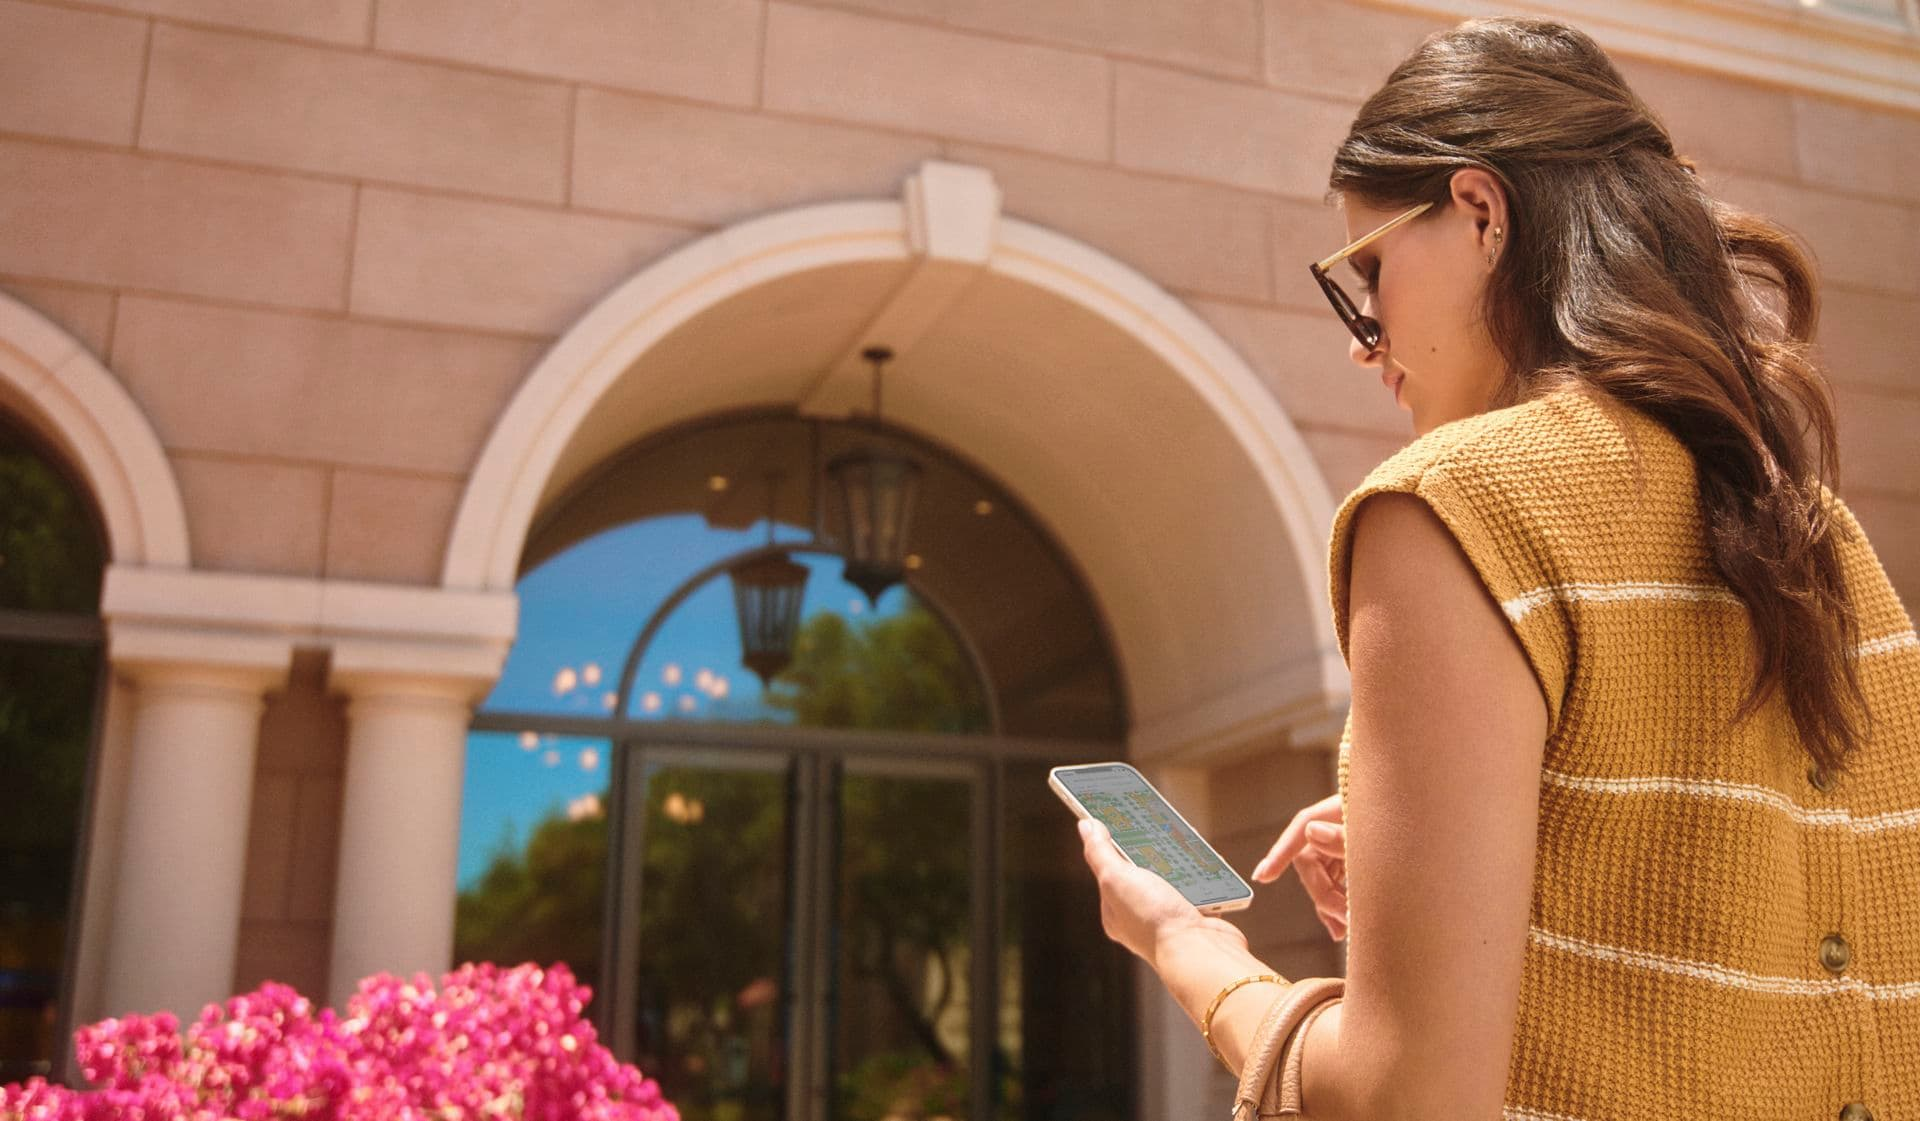 Exterior view of Tour Guide at Promenade Apartment Homes in Irvine, CA.